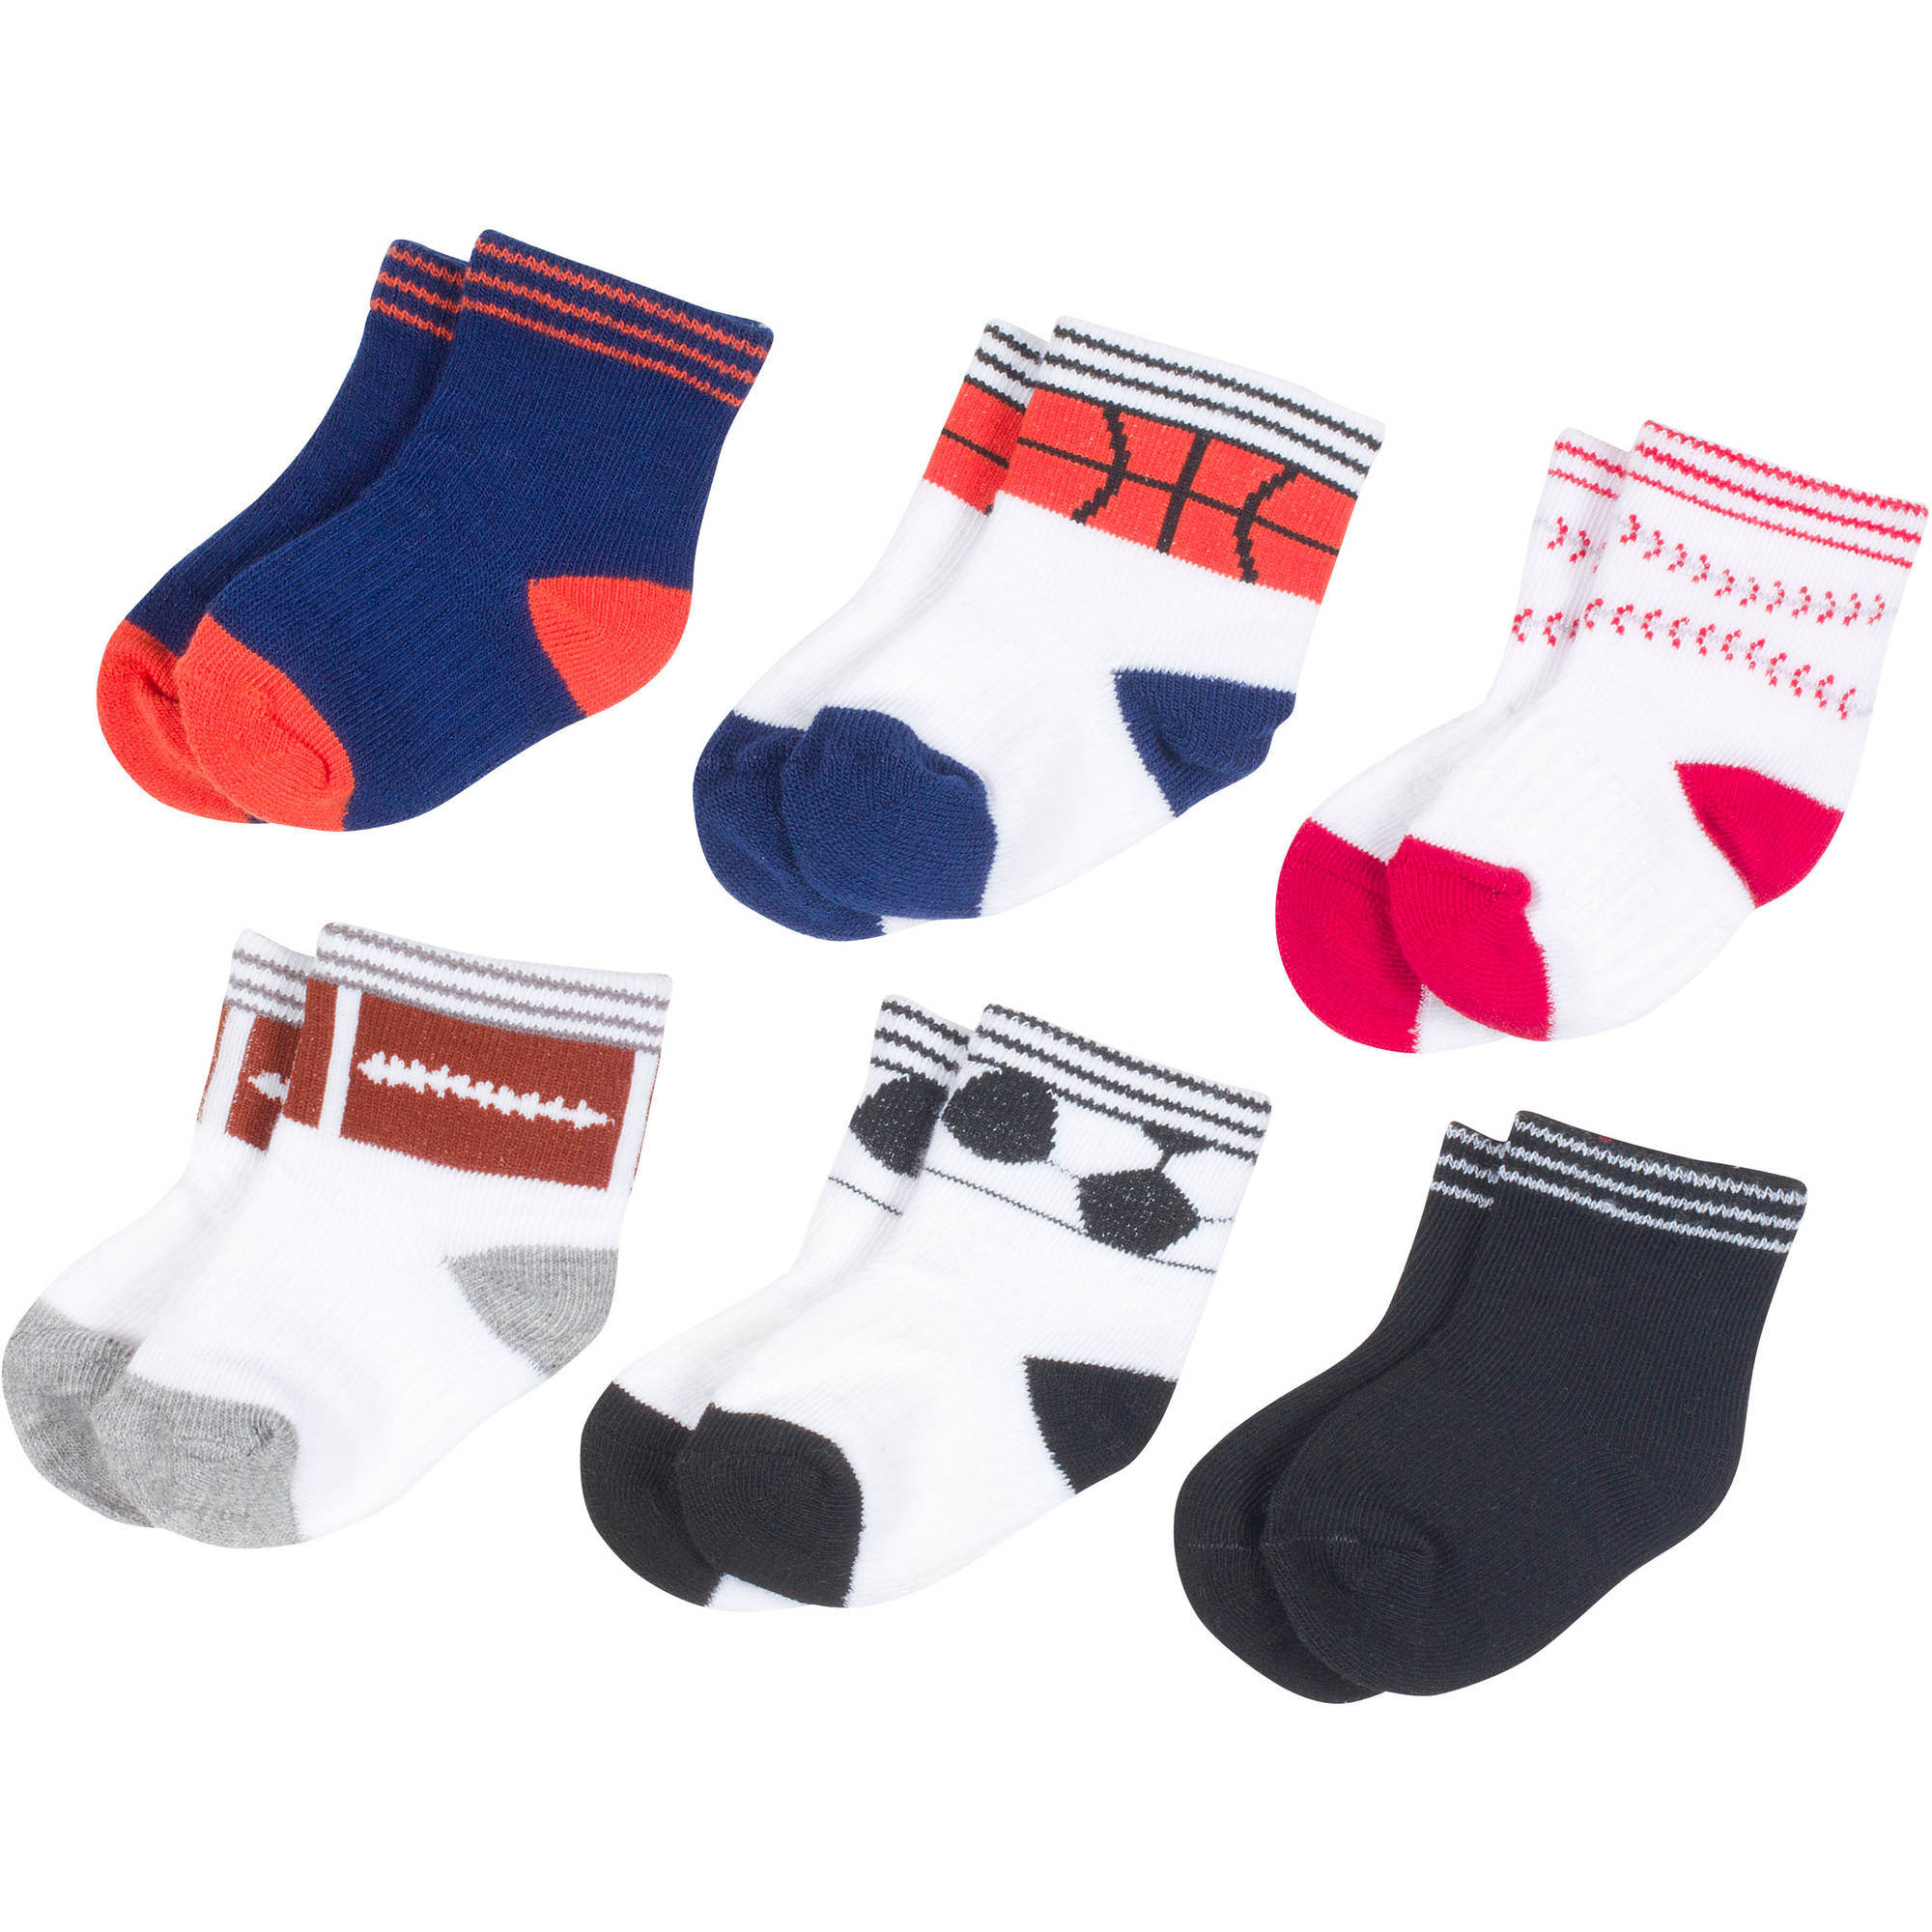 Growing Socks by Peds, Boy Infant, Balls, 6 Pairs